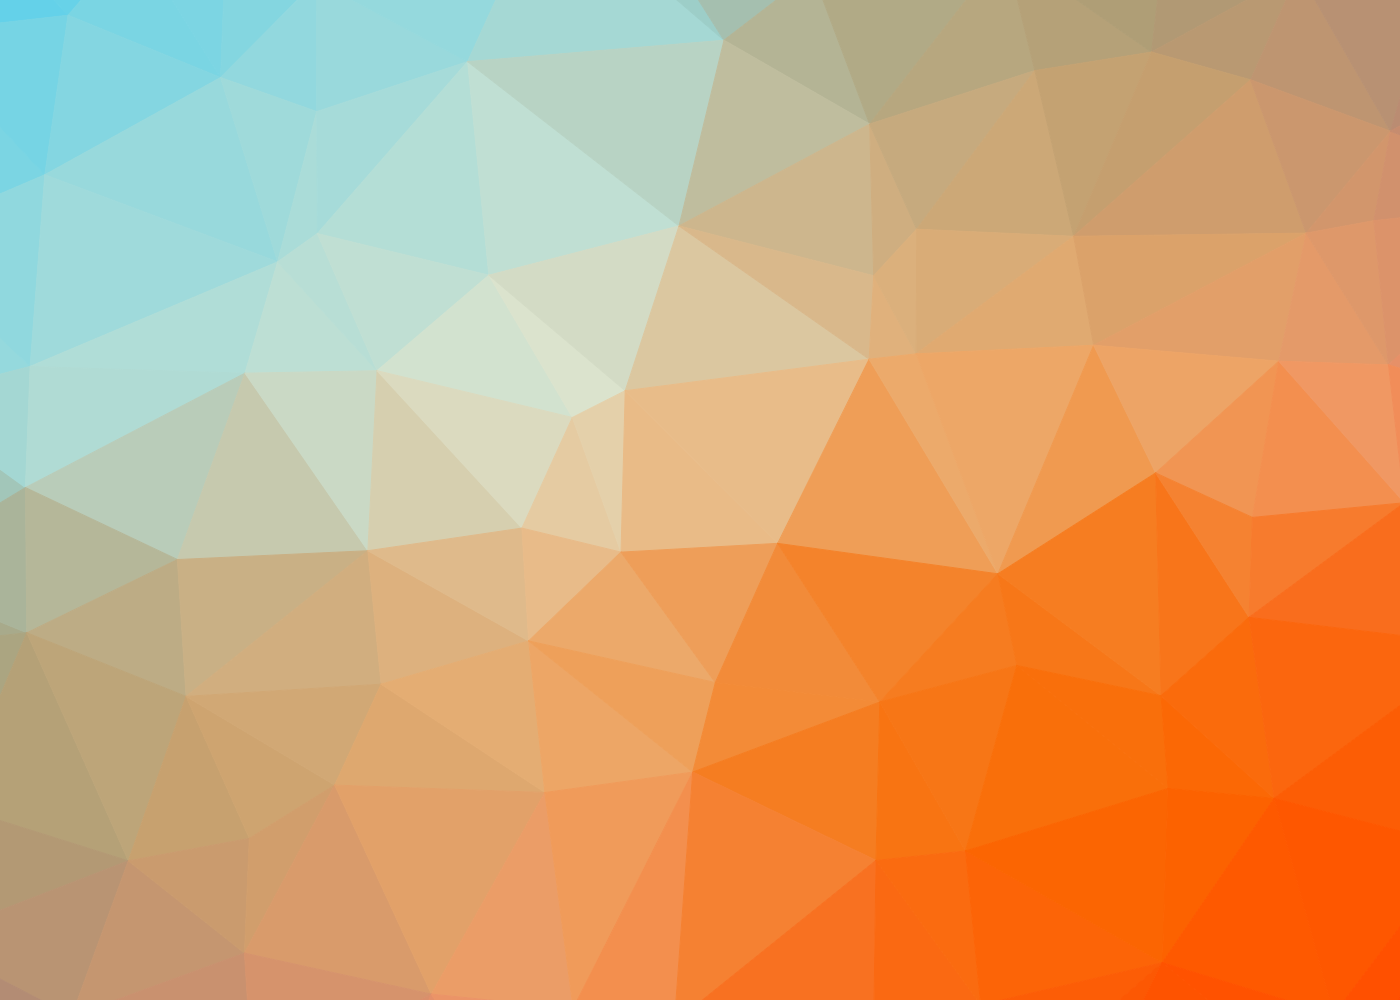 trianglify background generator Layout design